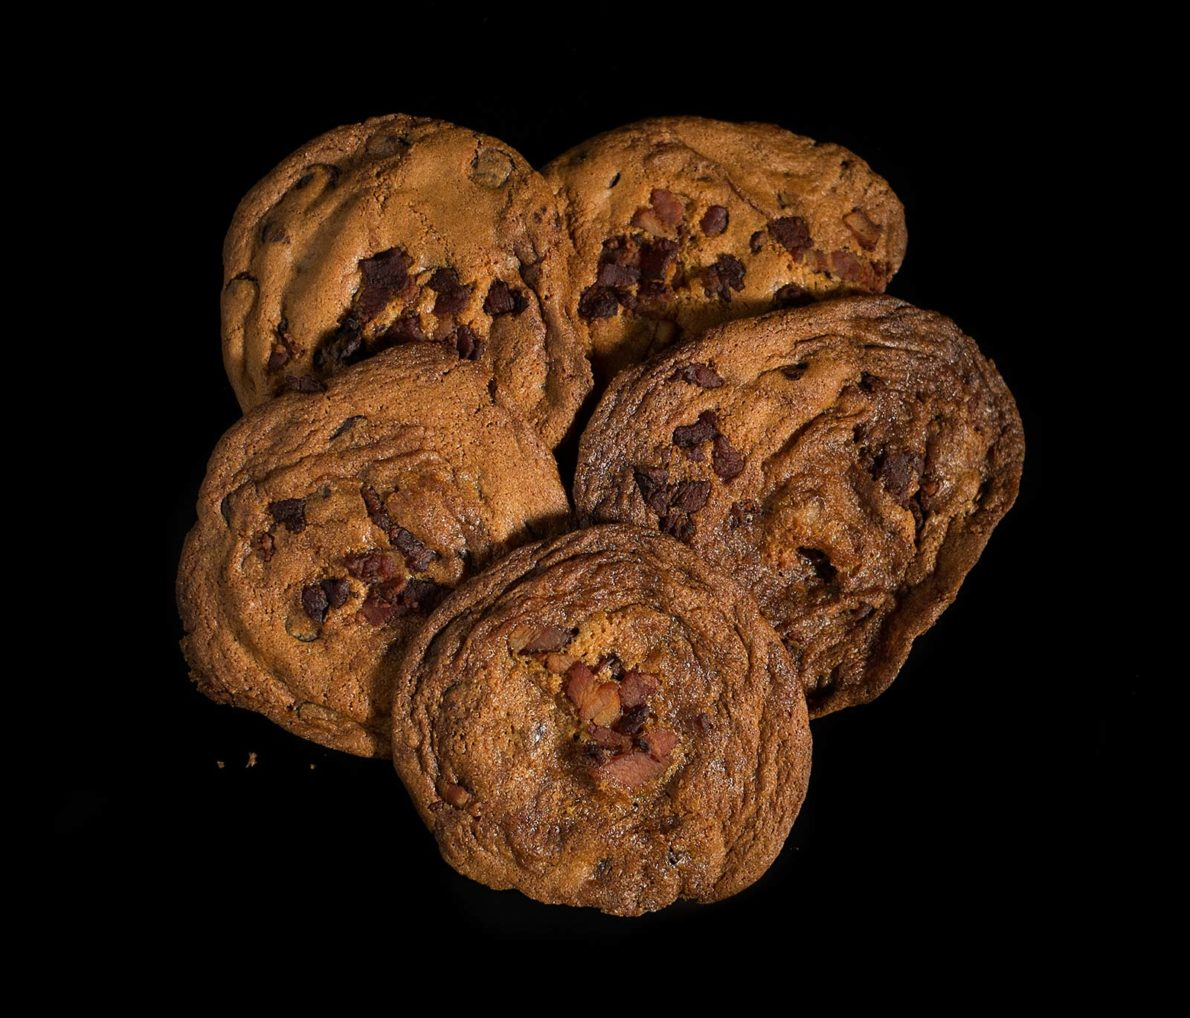 The Chocolate Chip Cookies